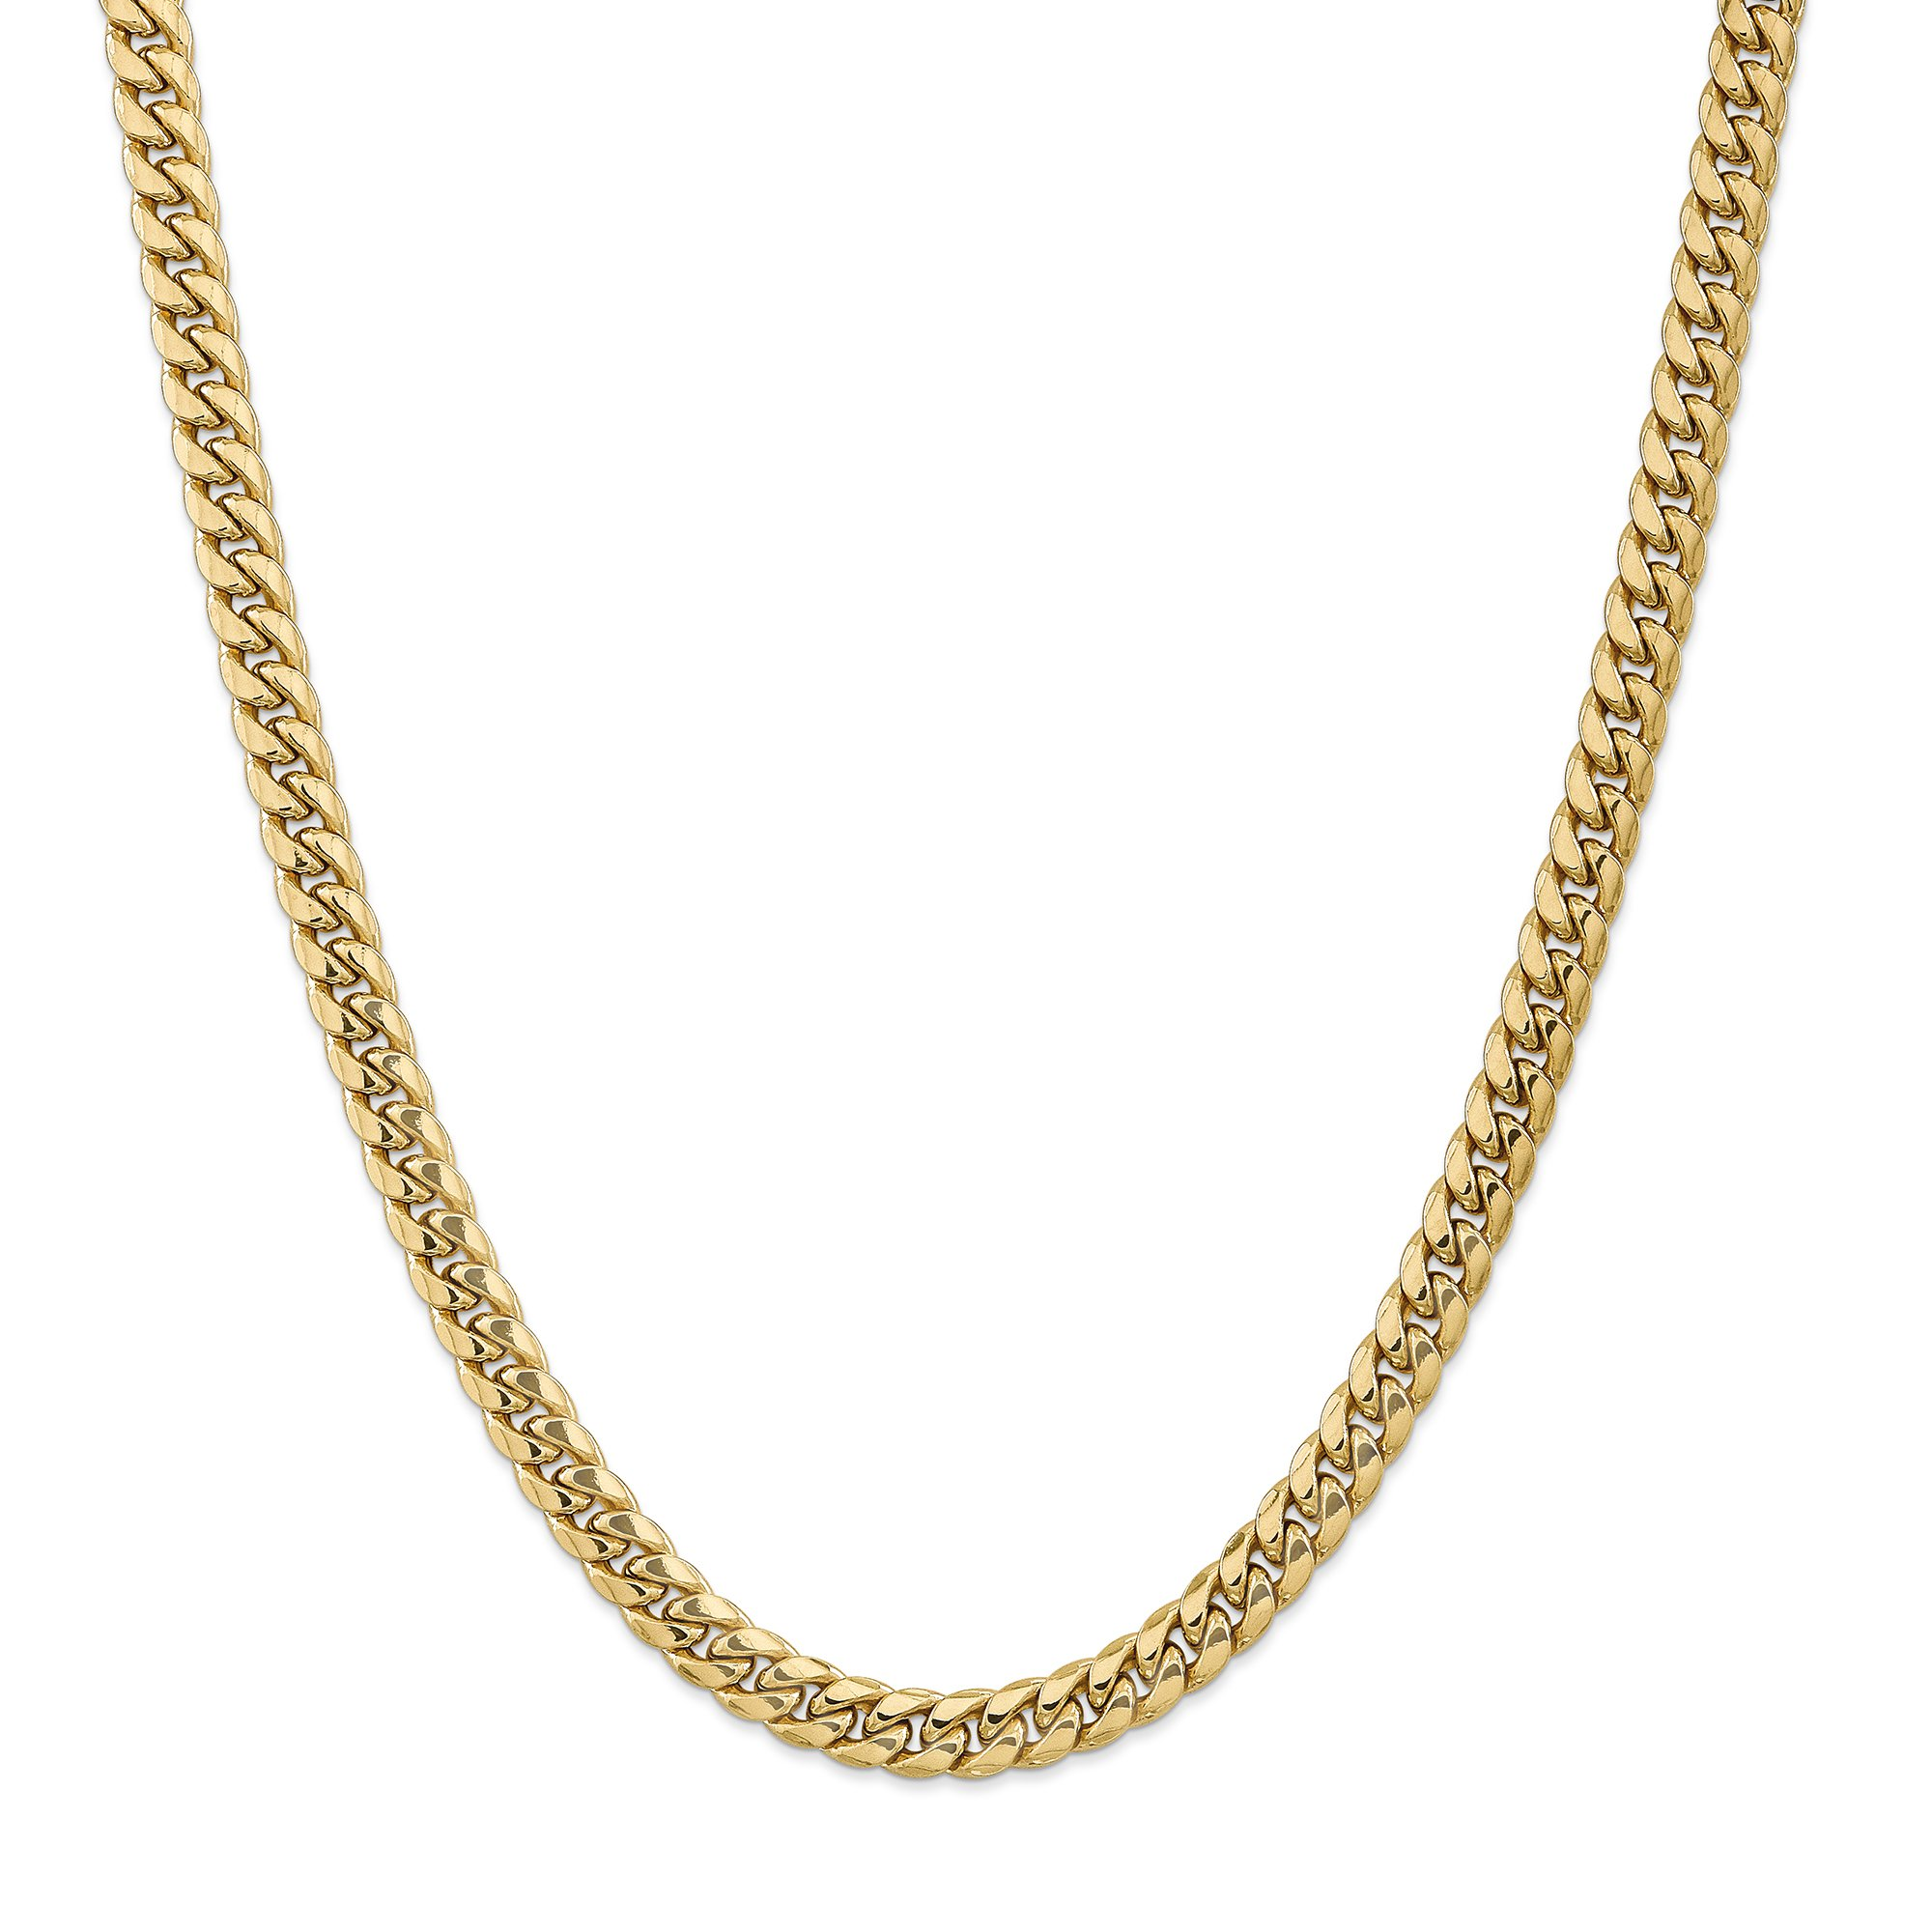 ICE CARATS 14k Yellow Gold 7.3mm Miami Cuban Chain Necklace 24 Inch Curb Fine Jewelry Gift Set For Women Heart